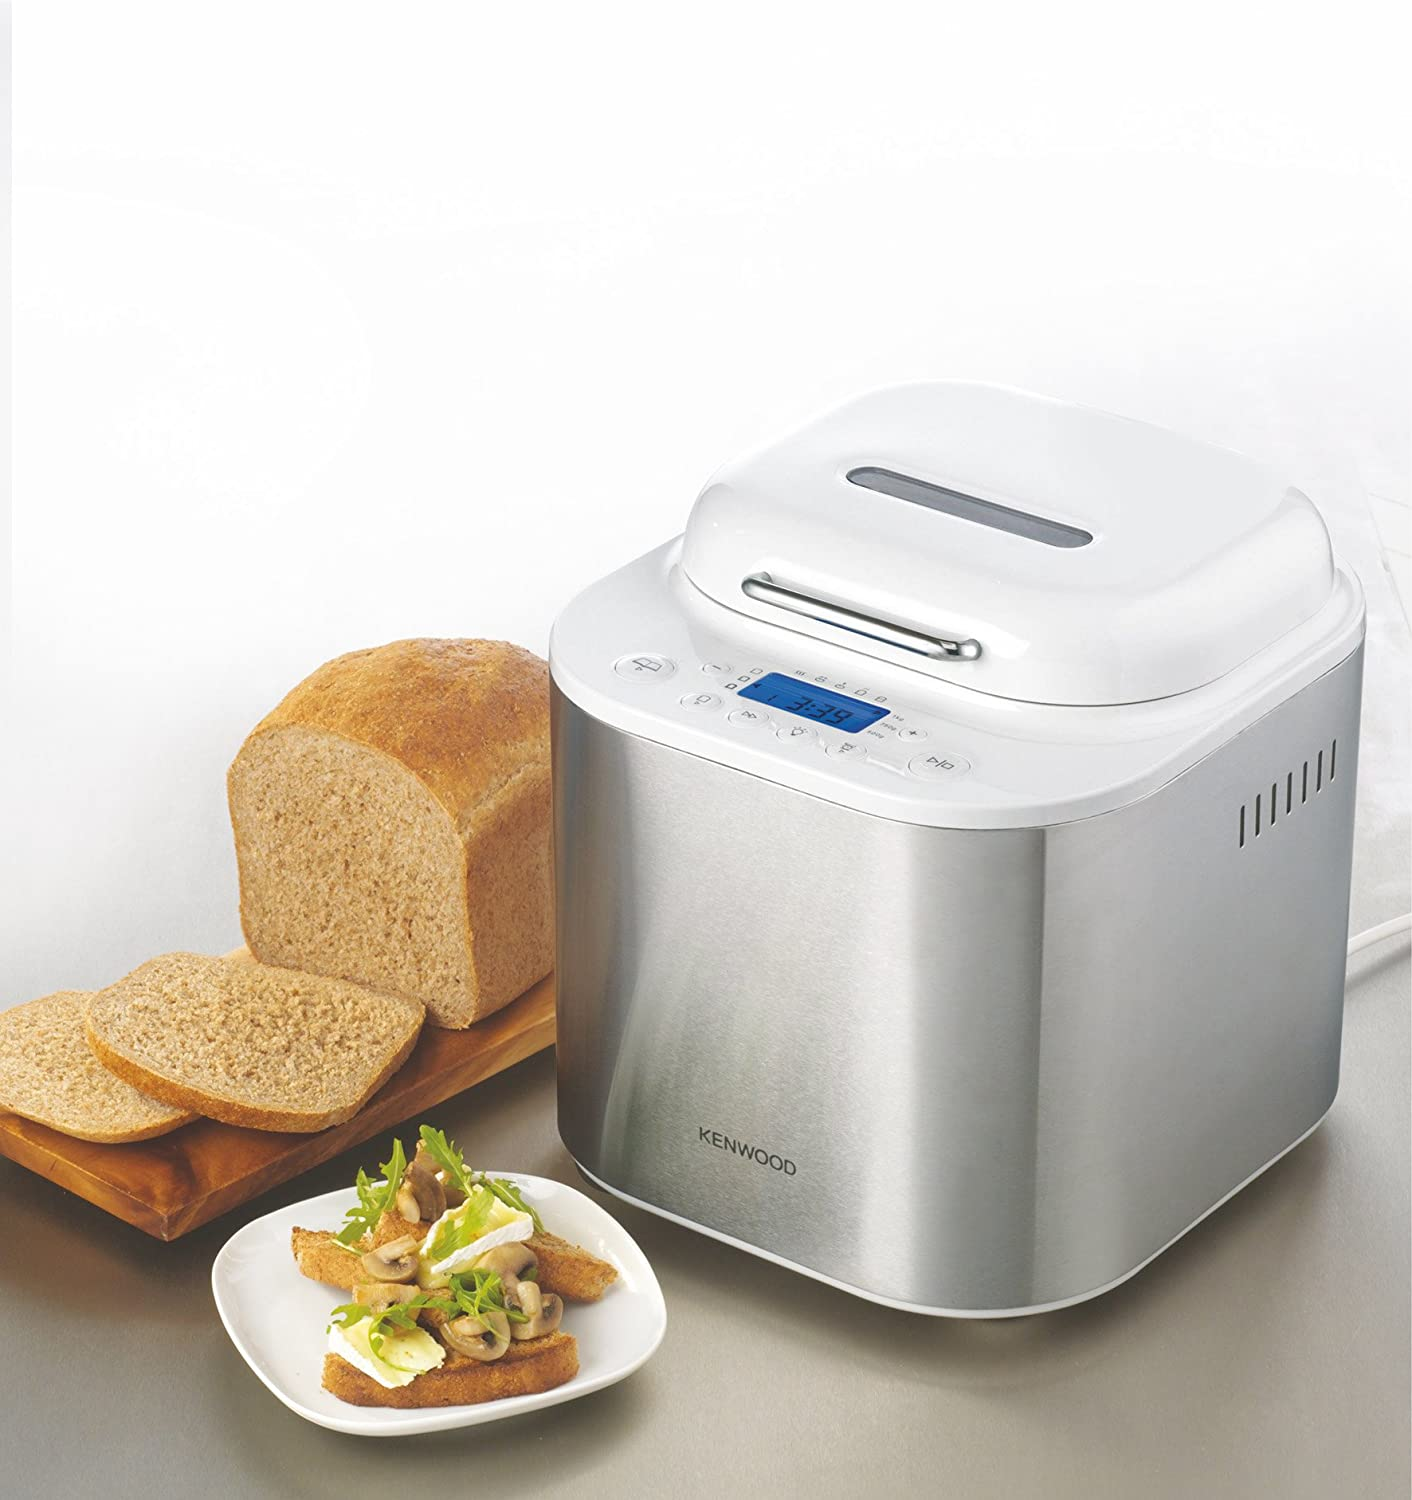 Kenwood - Panificadora Bm366 Breadmaker + Fan Eu Pl Int: Amazon.es: Hogar